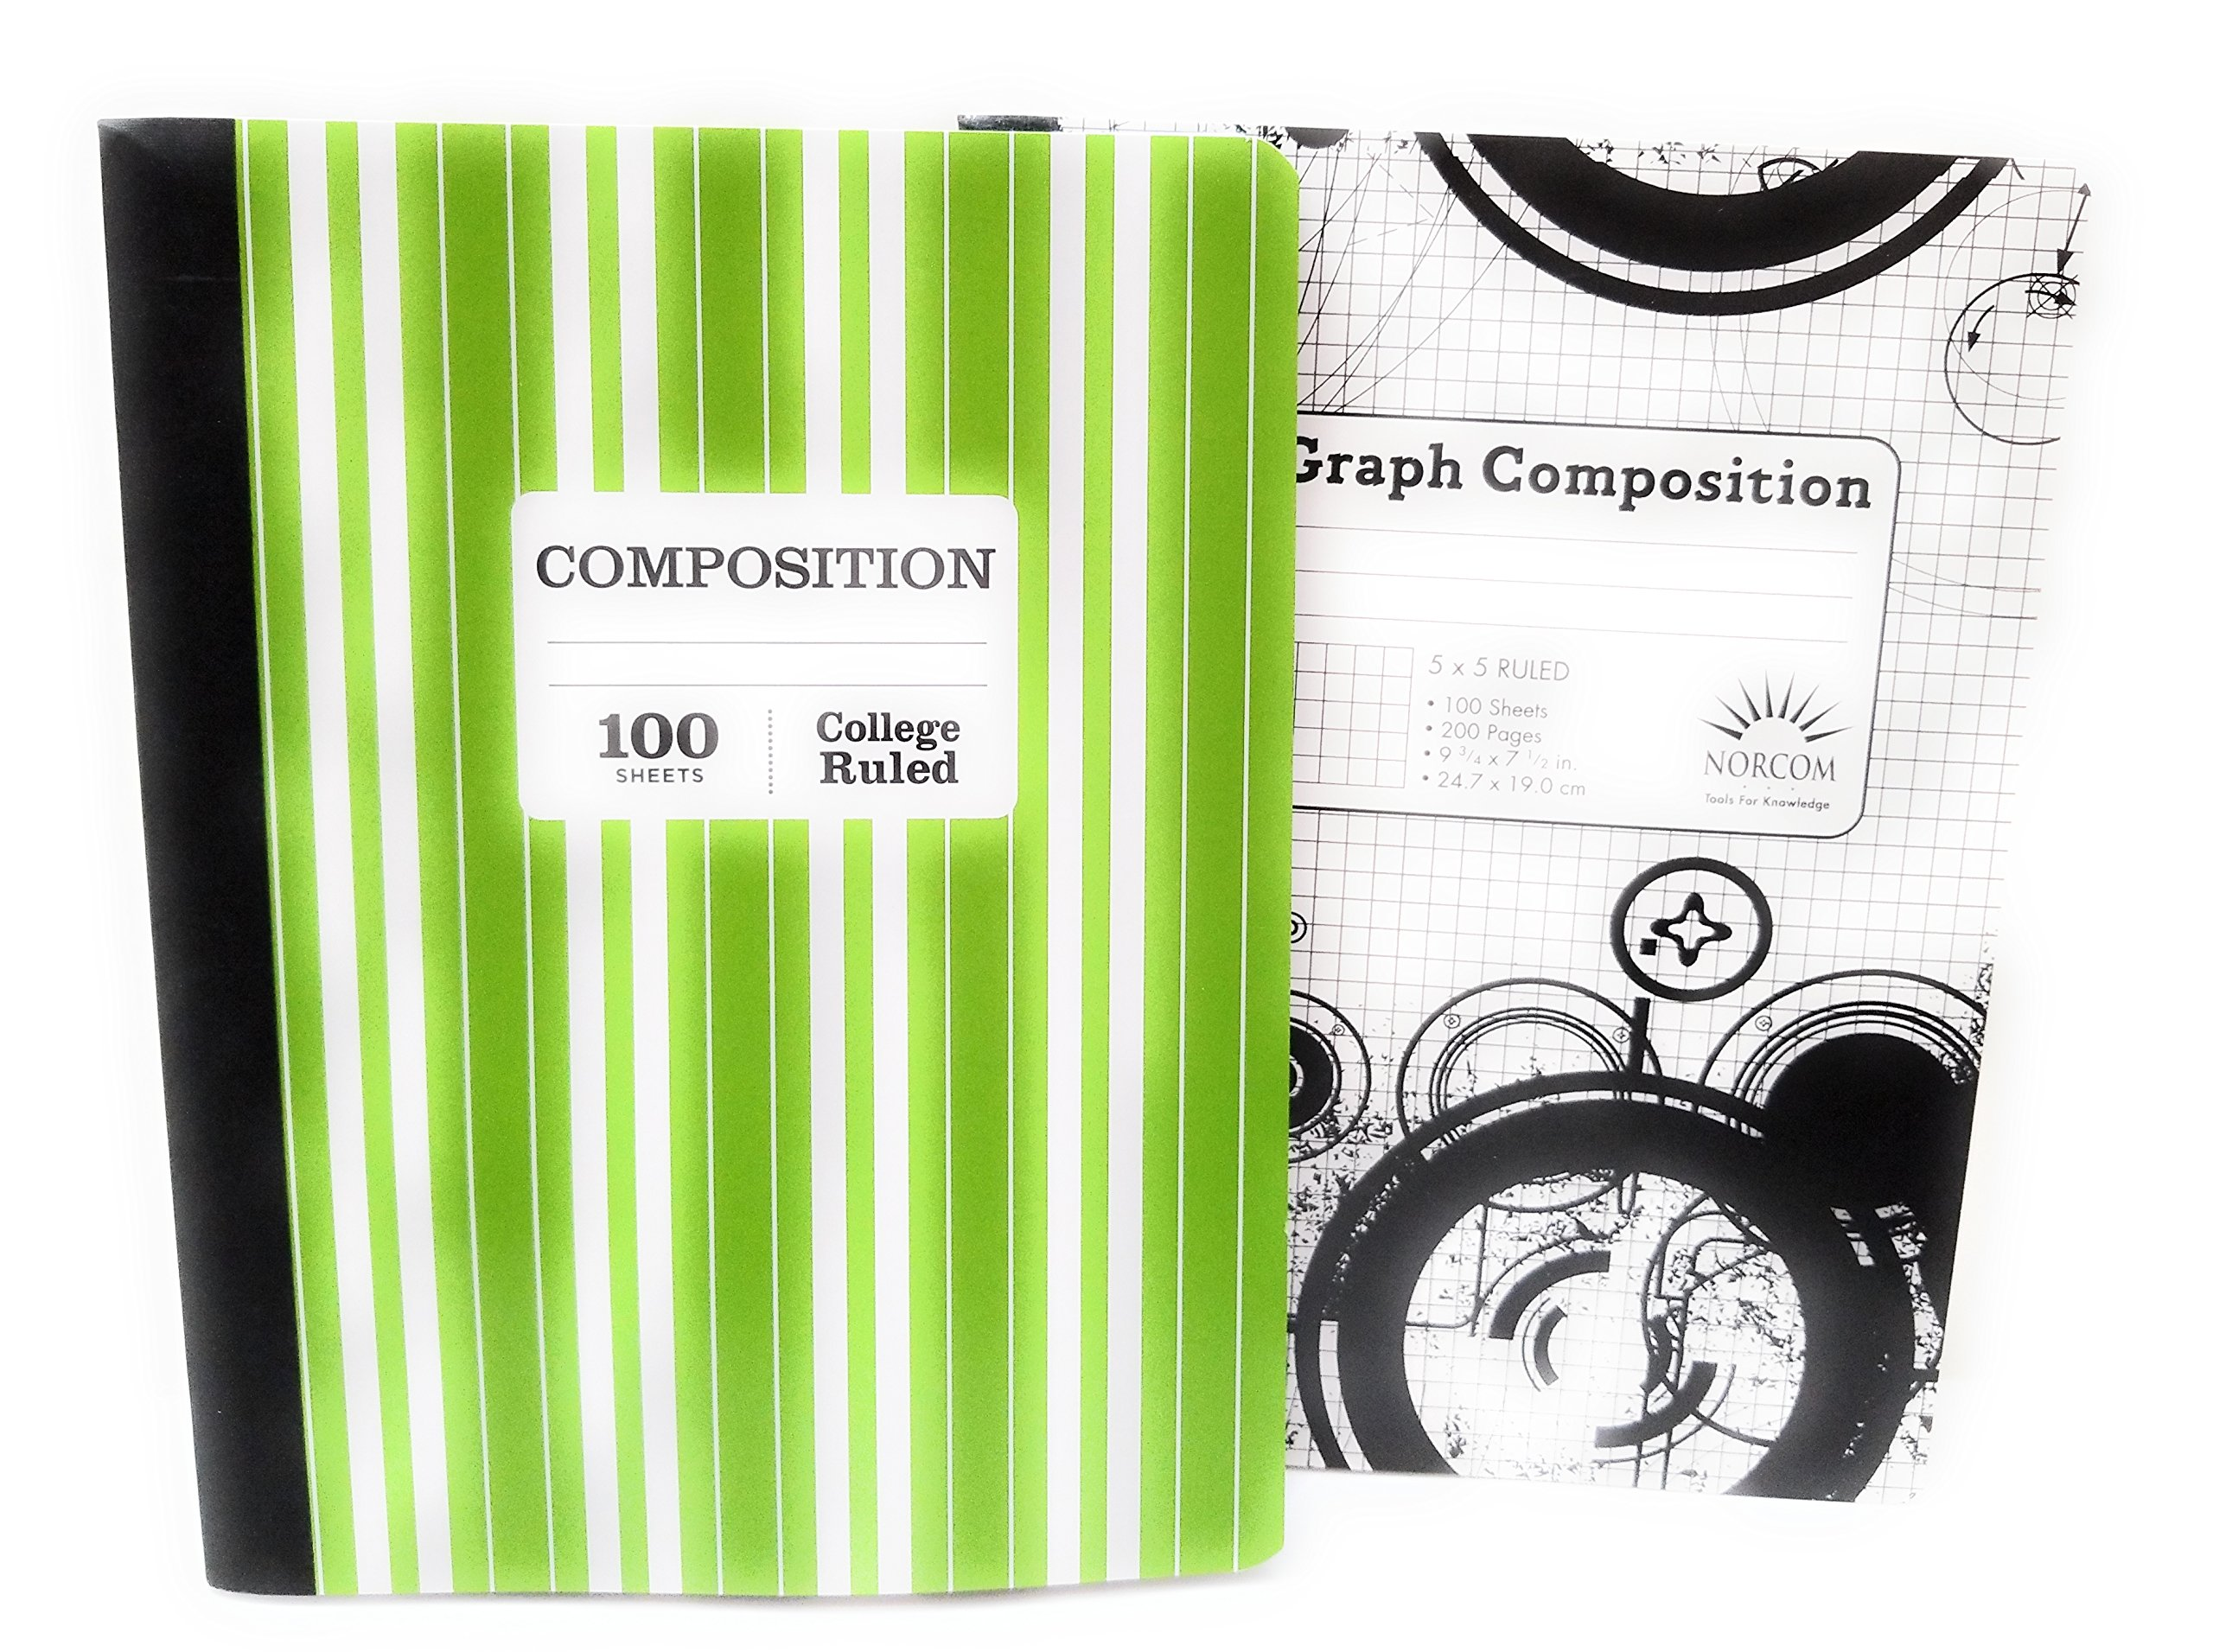 Green and White Striped Notebook & 5 x 5 Graph Notebook - Pack of 2